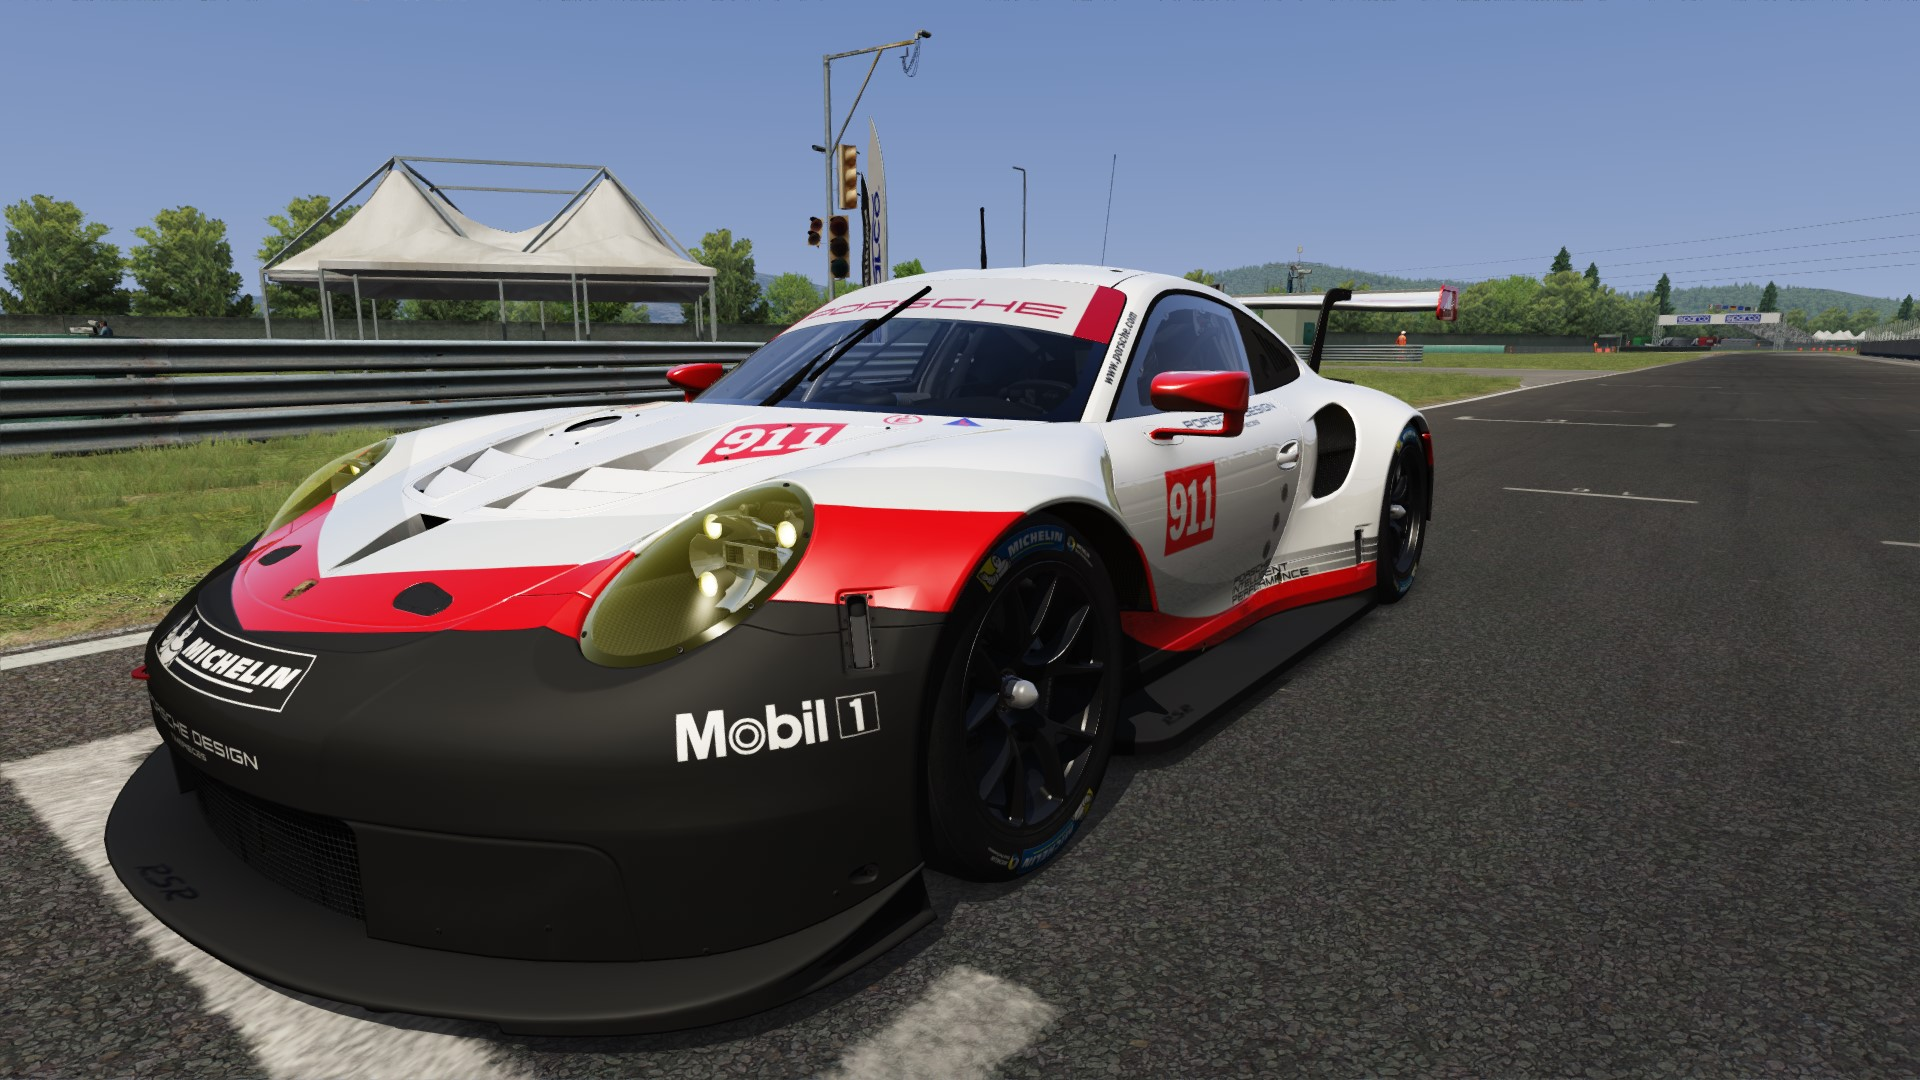 Screenshot_ks_porsche_911_rsr_2017_magione_23-3-117-22-54-20.jpg